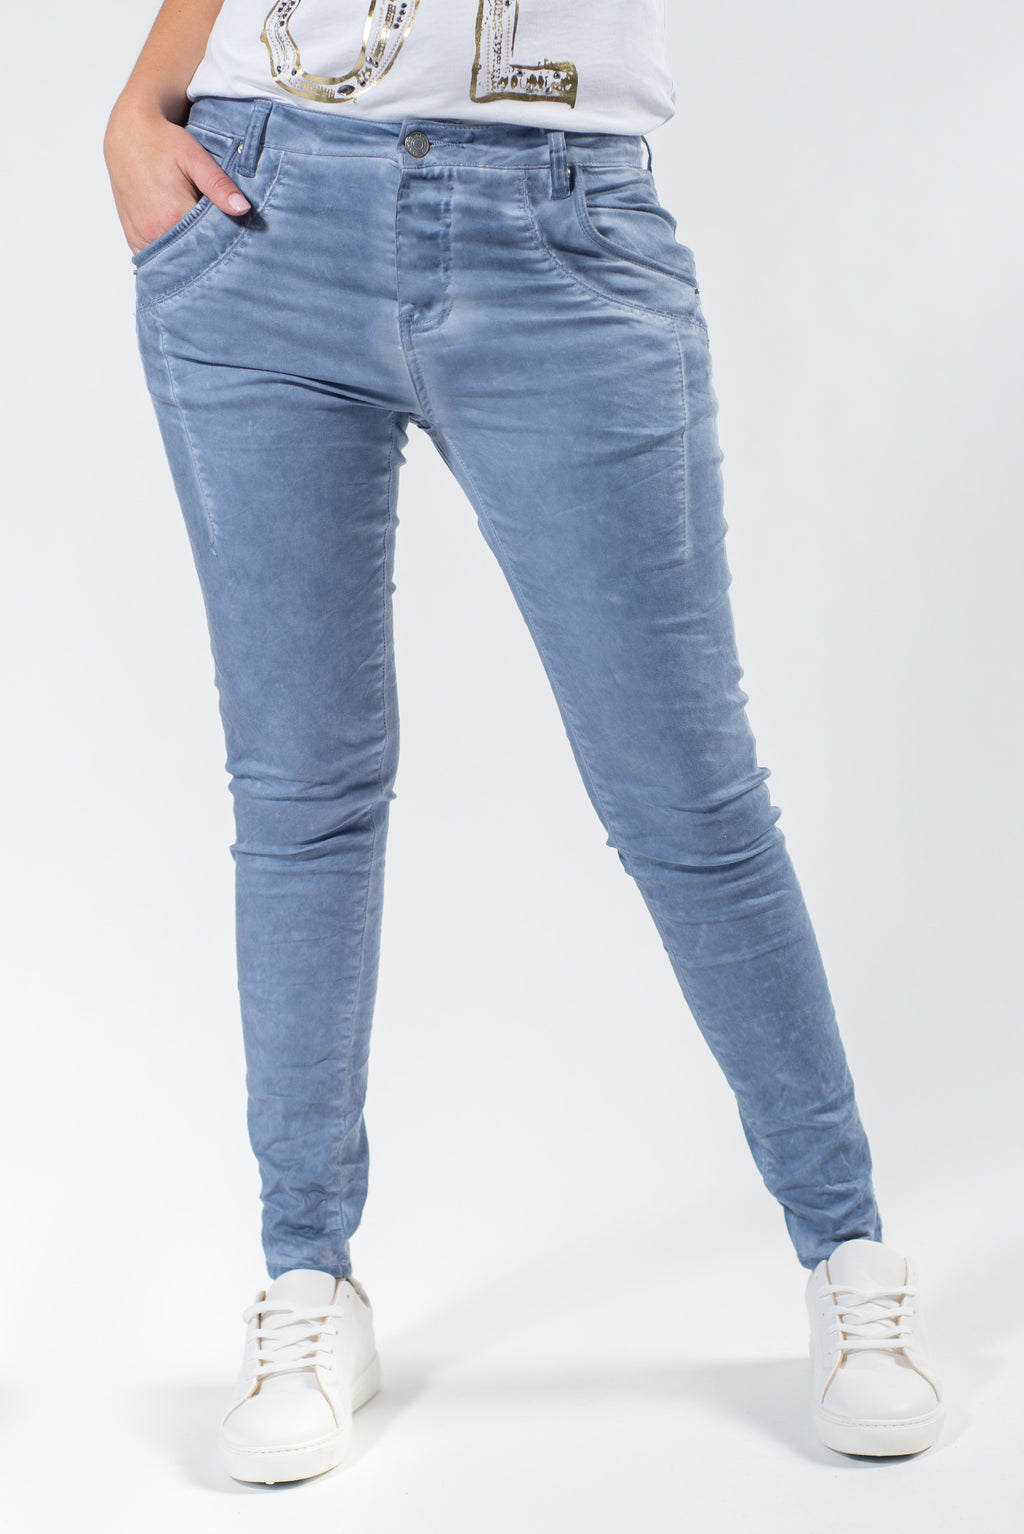 Greenbay Blue Boyfriend Pant